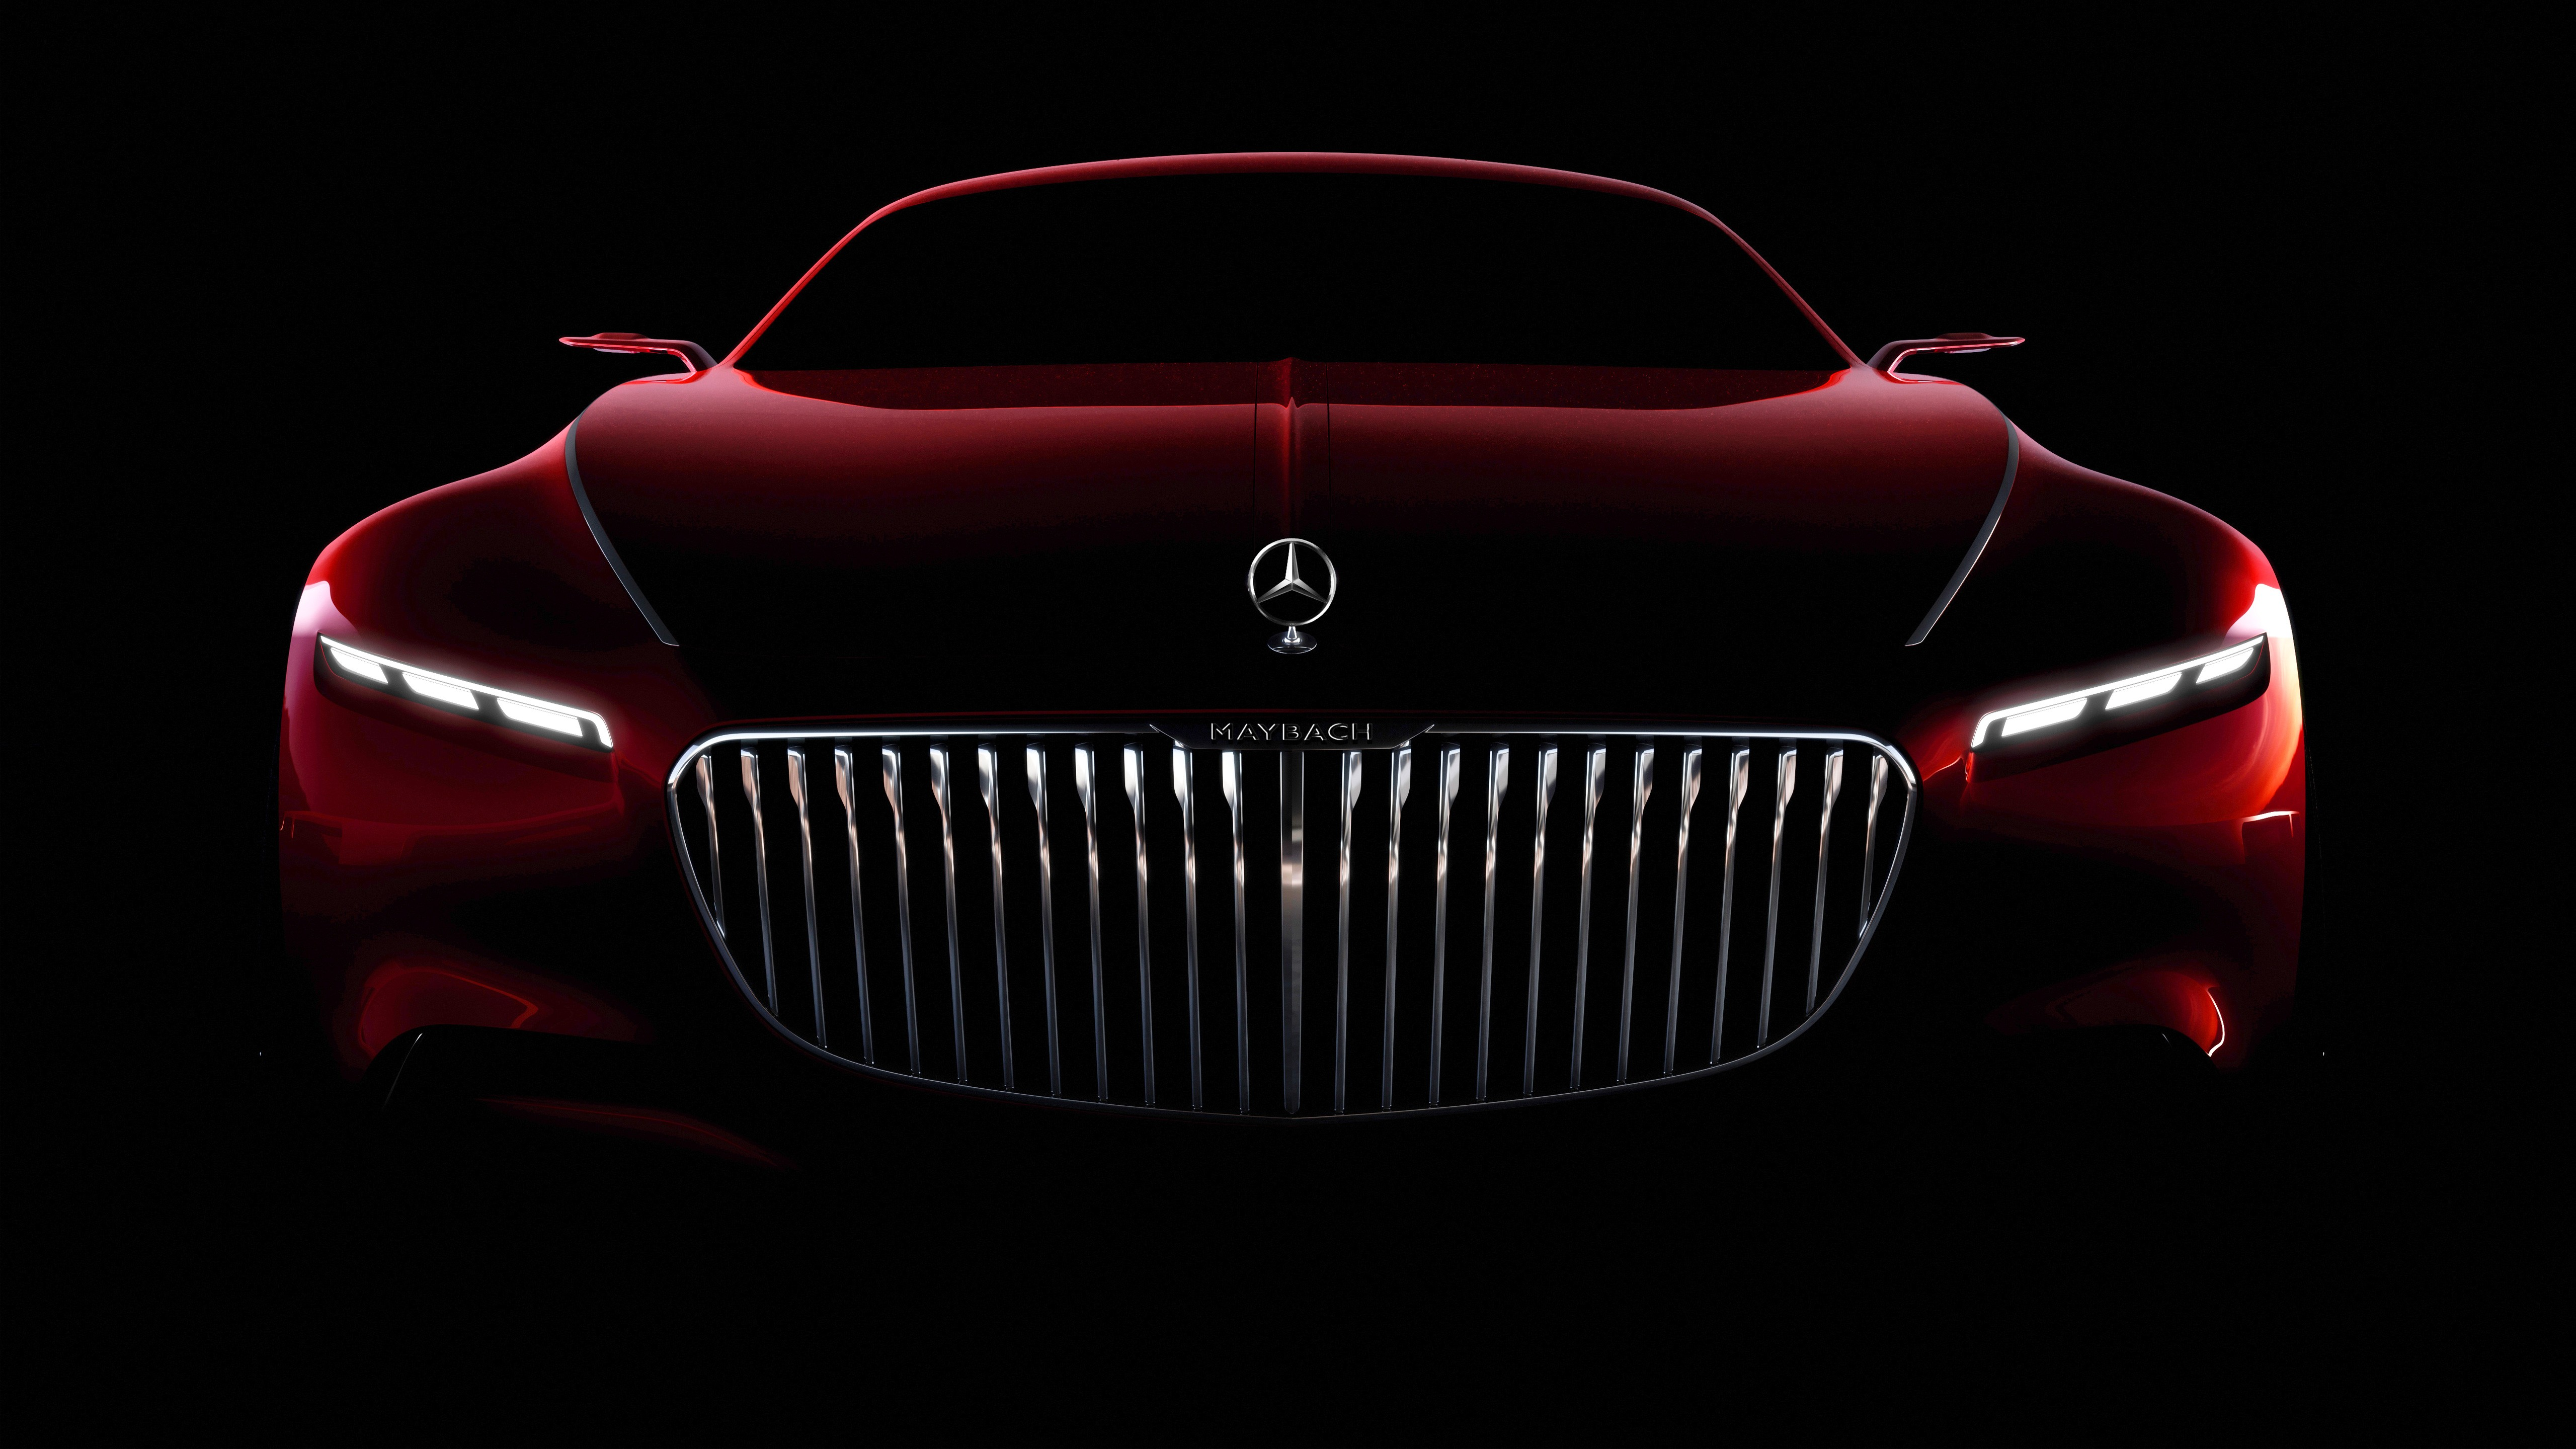 Wallpaper Ferrari Iphone 5 Vision Mercedes Maybach 6 Coupe 5k Wallpaper Hd Car